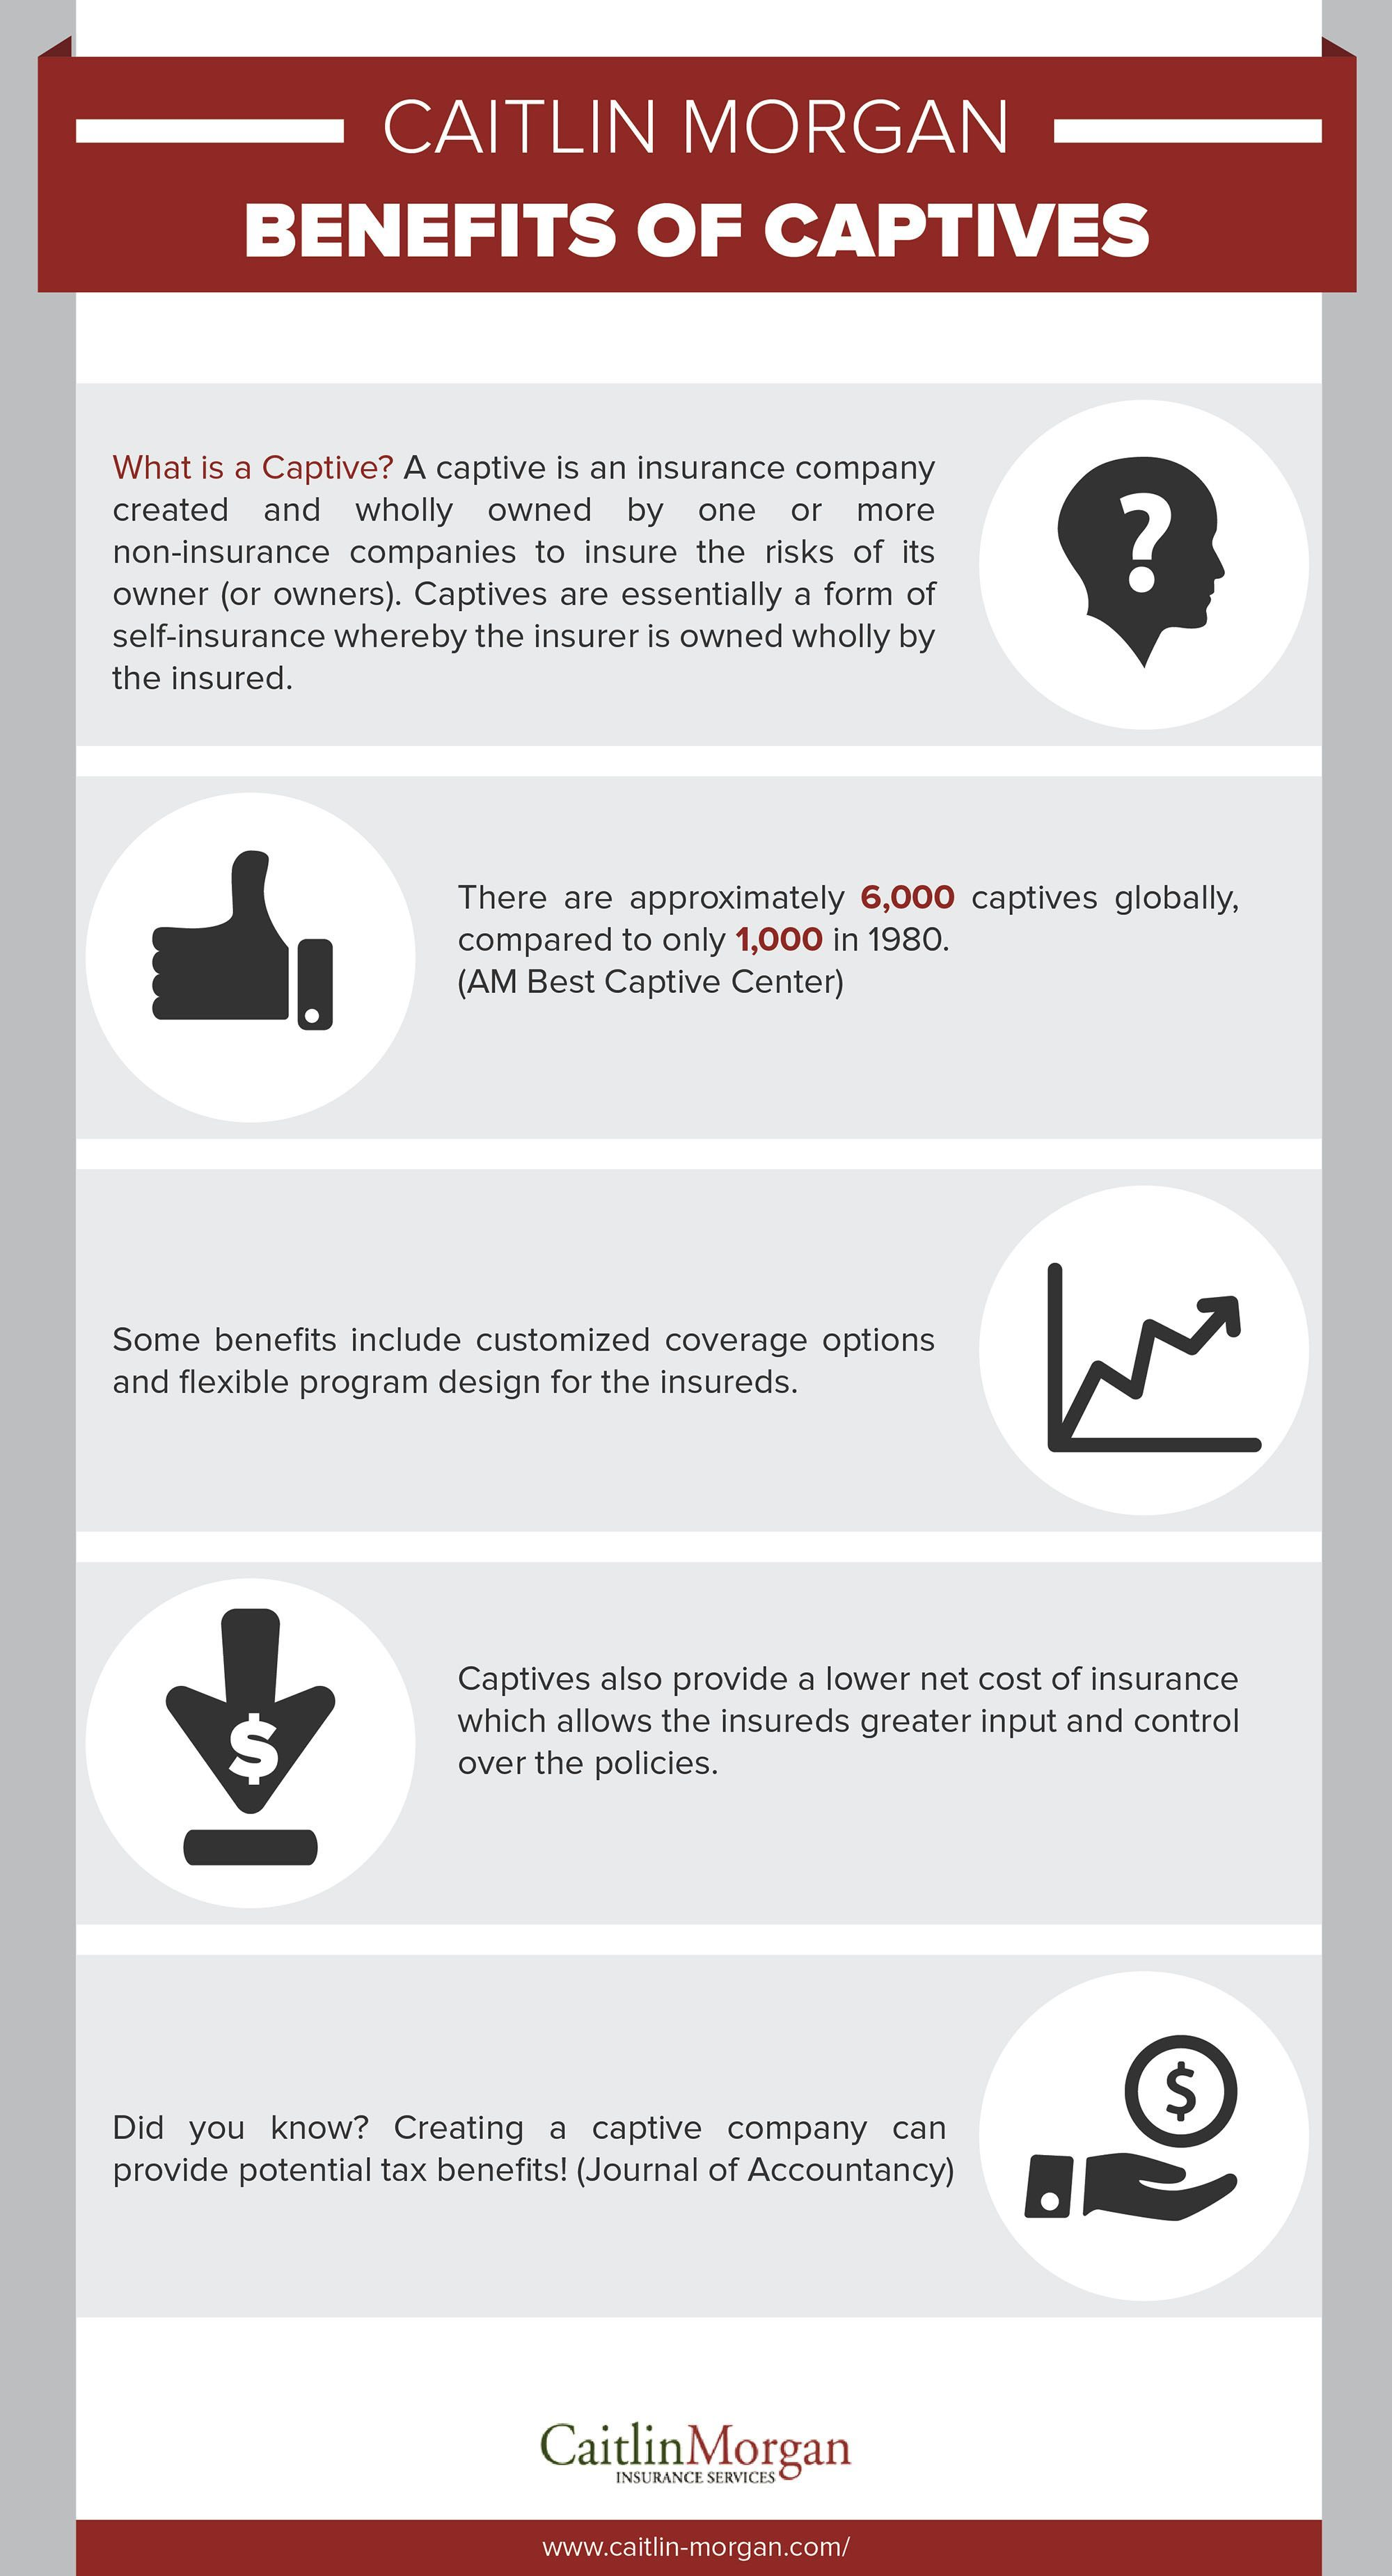 Benefits of Captives Infographic